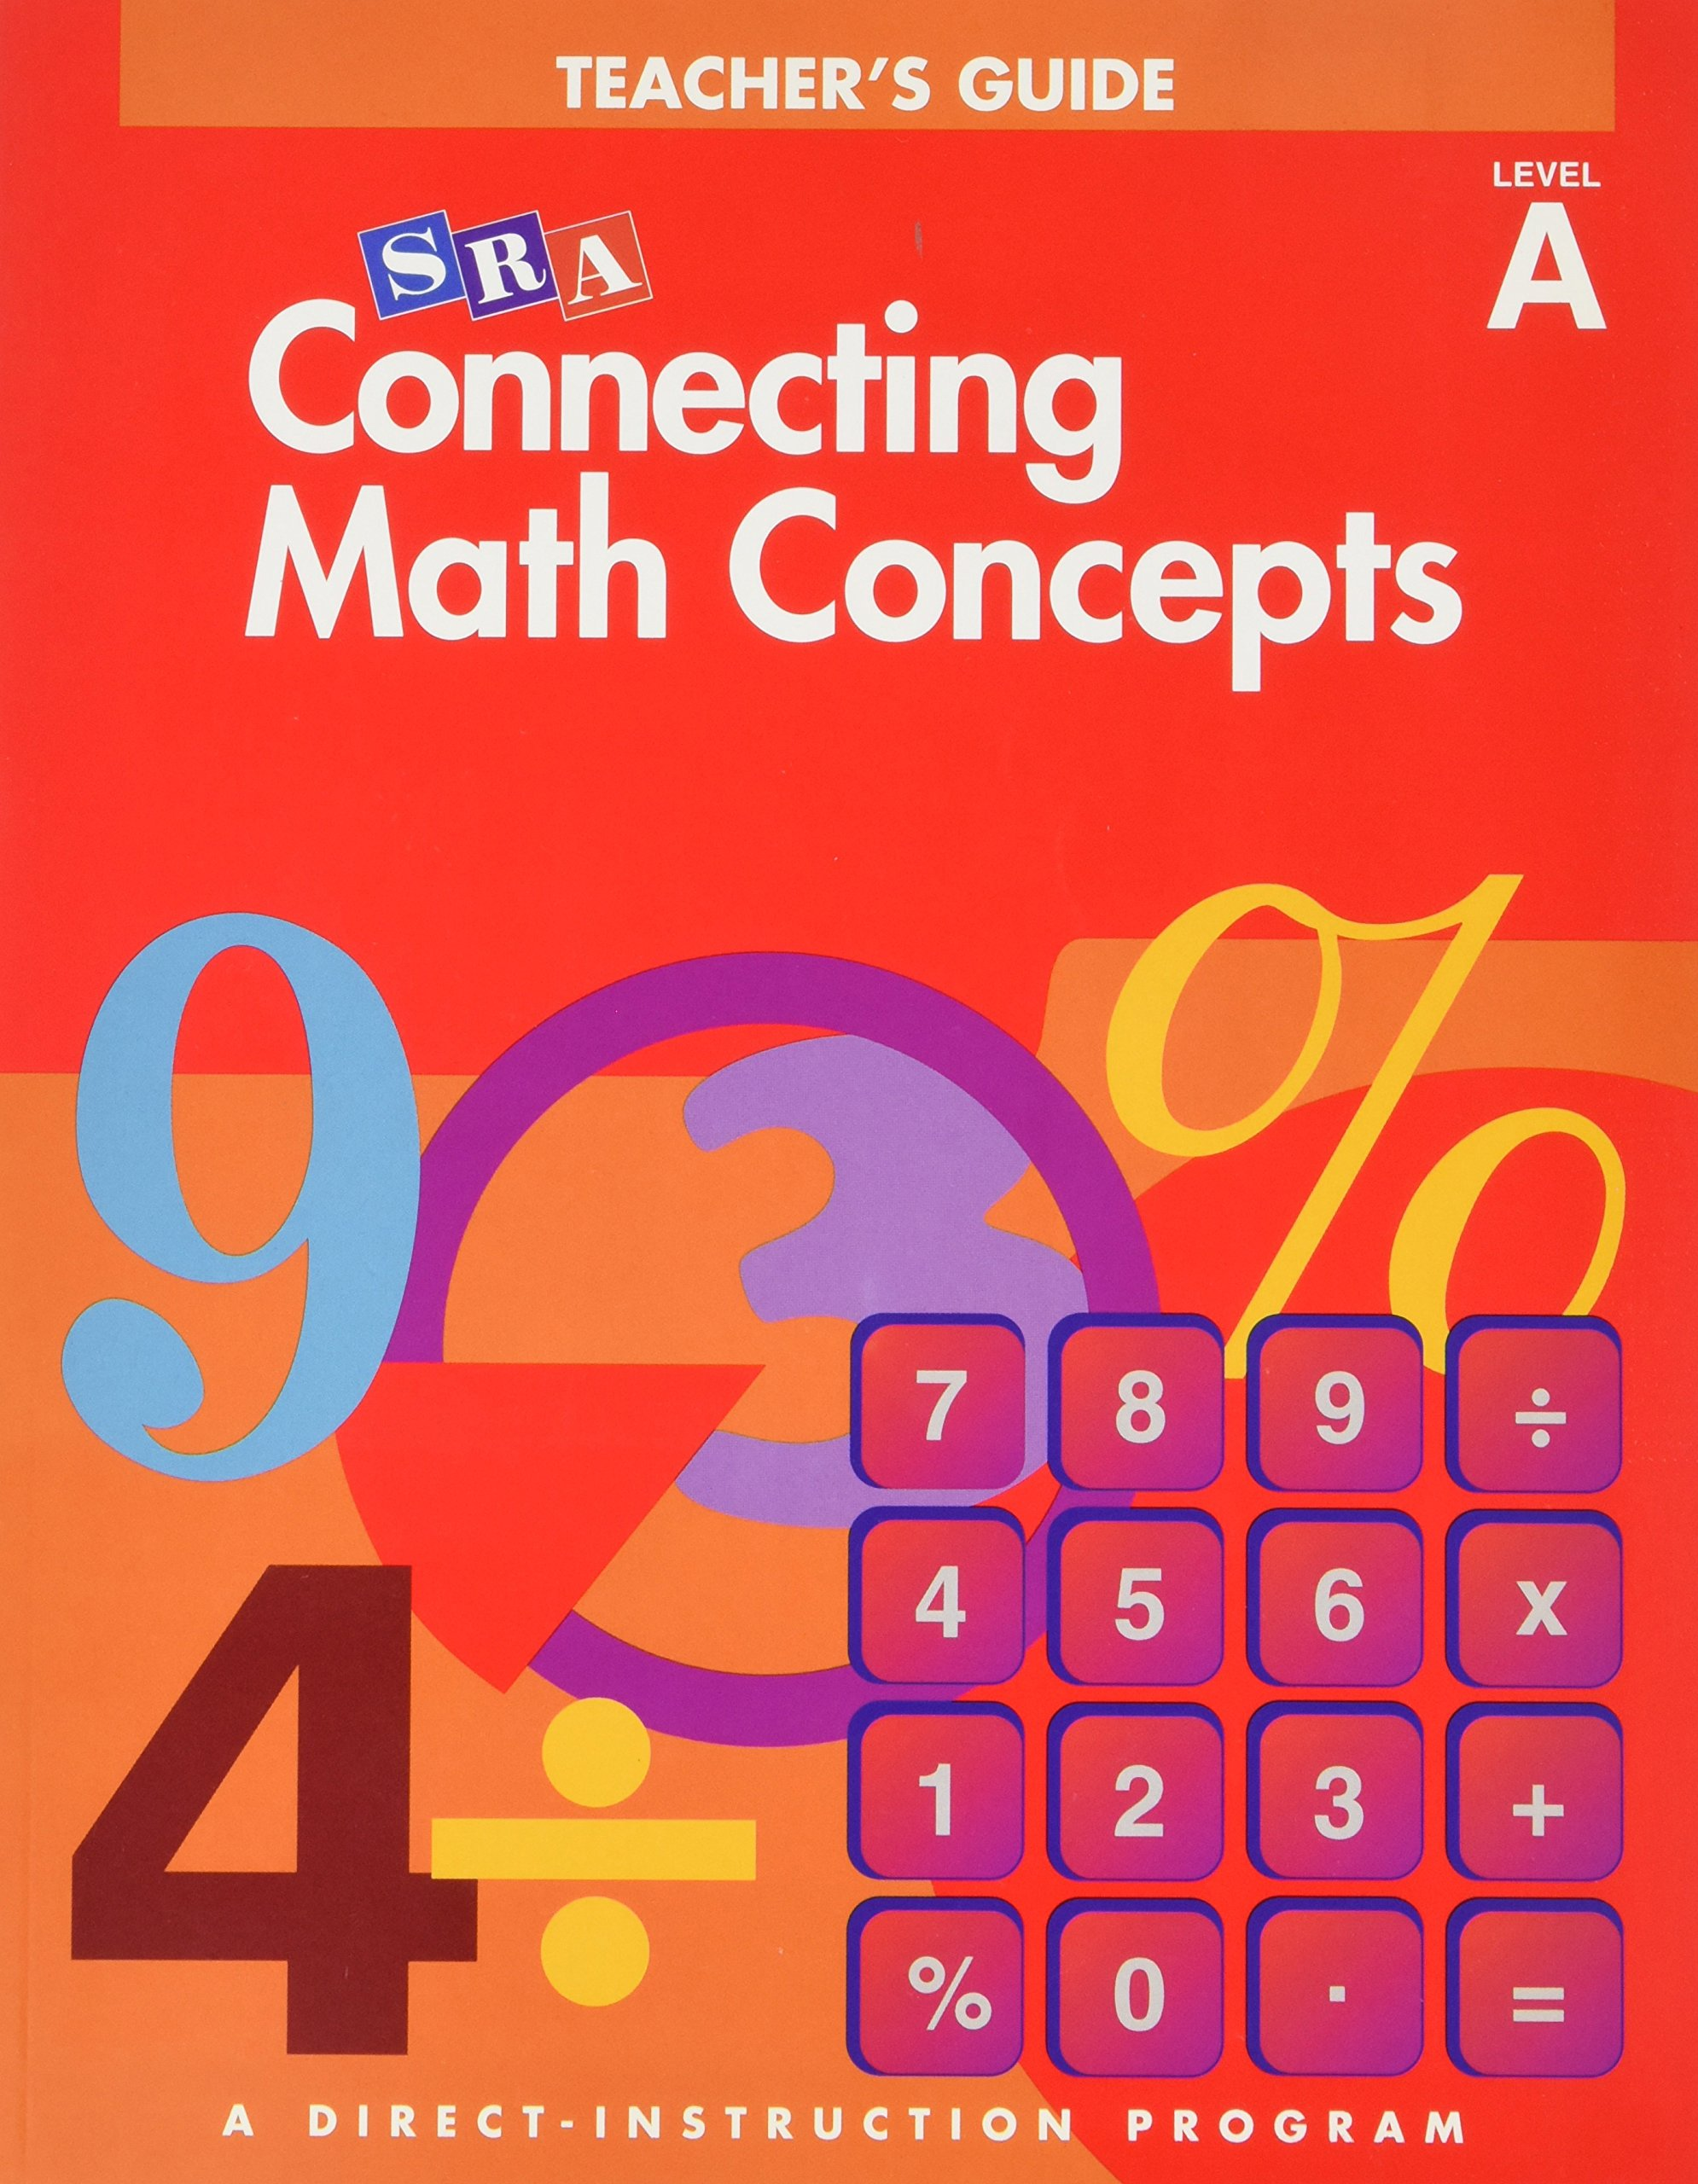 Download SRA Connecting Math Concepts Teacher's Guide Level A PDF